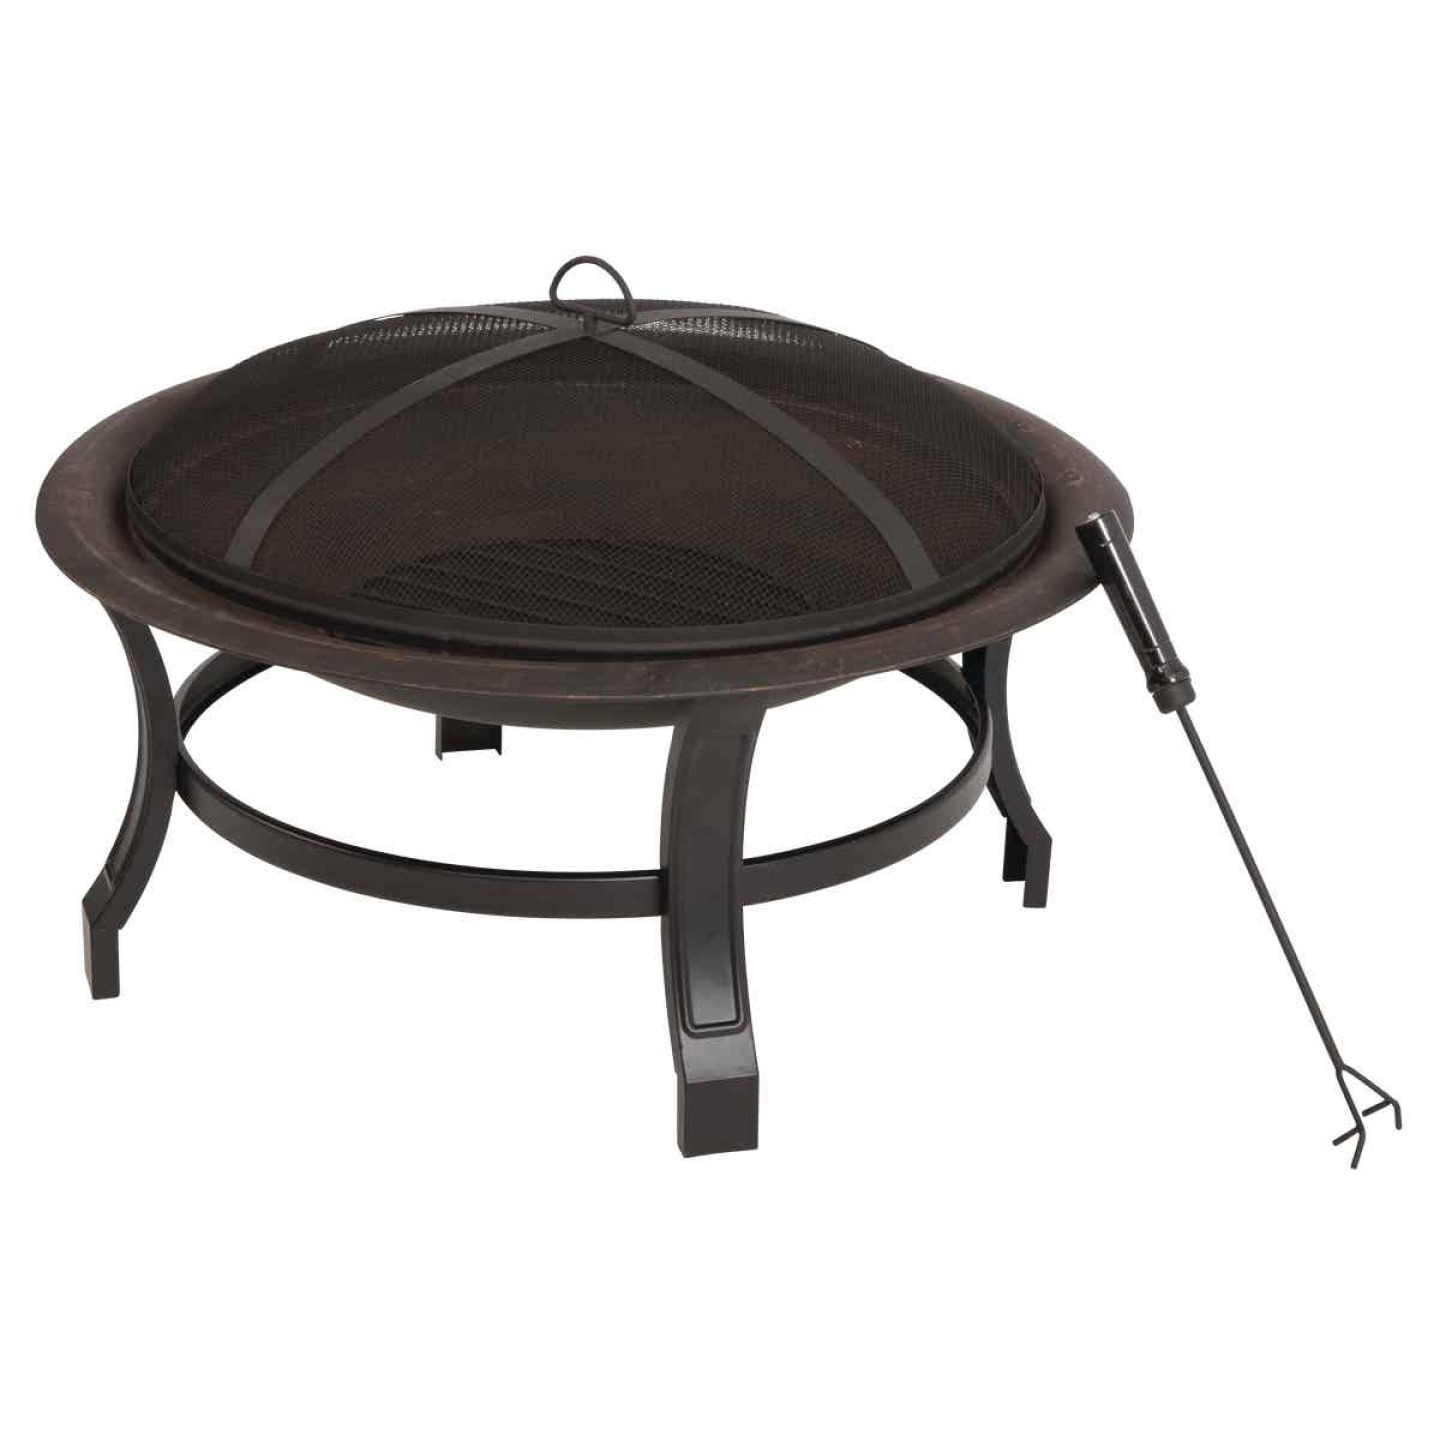 Outdoor Expressions 30 In. Antique Bronze Round Steel Fire Pit Image 1